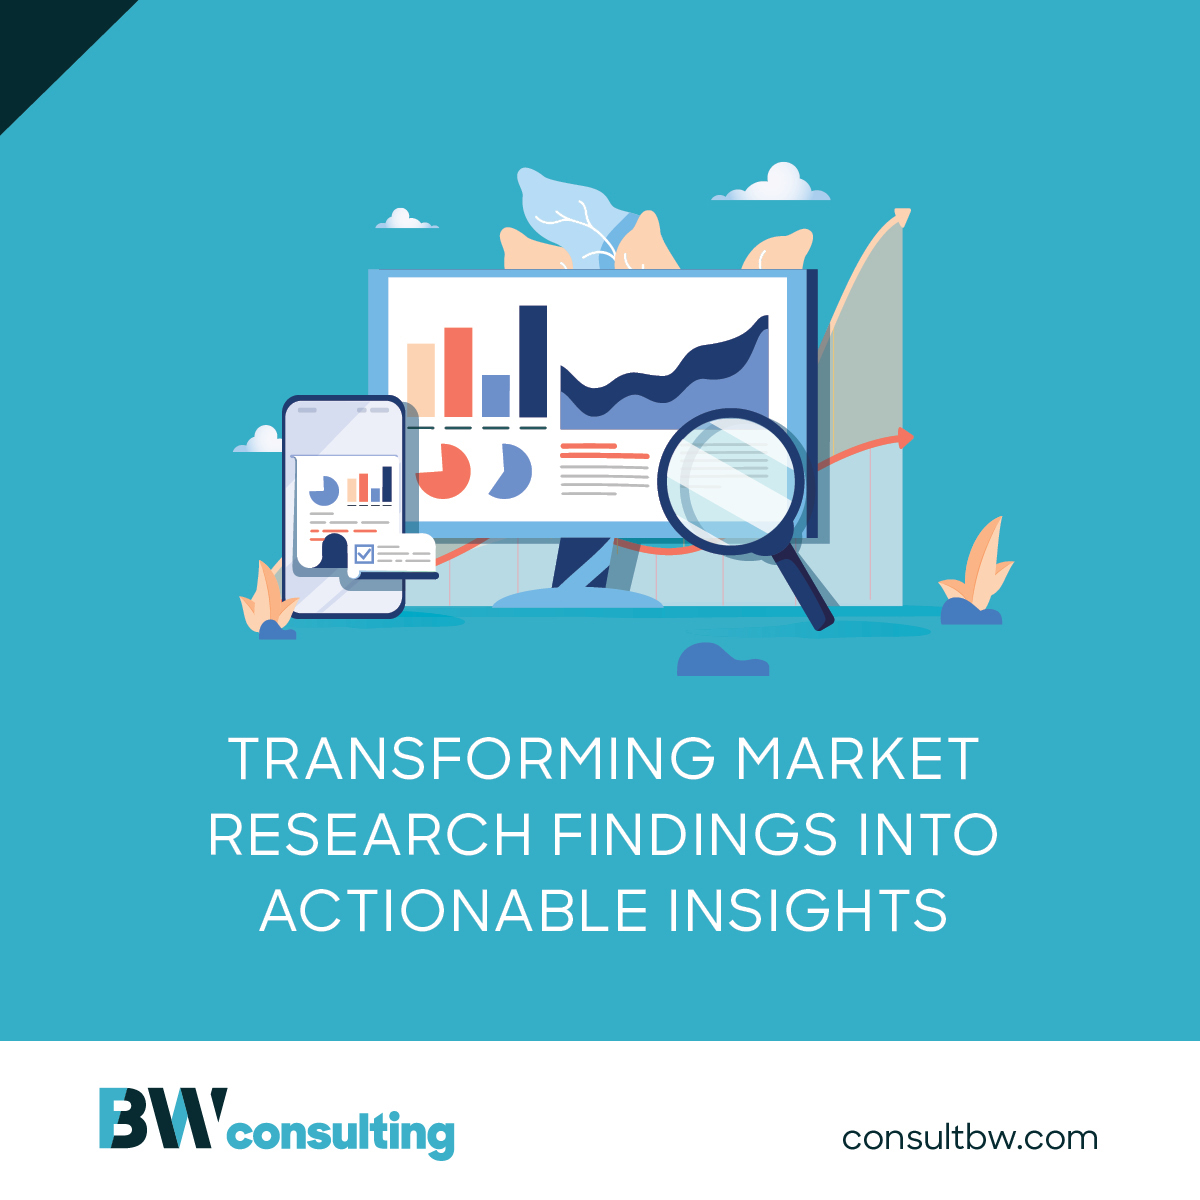 Transforming Market Research Findings Into Actionable Insights